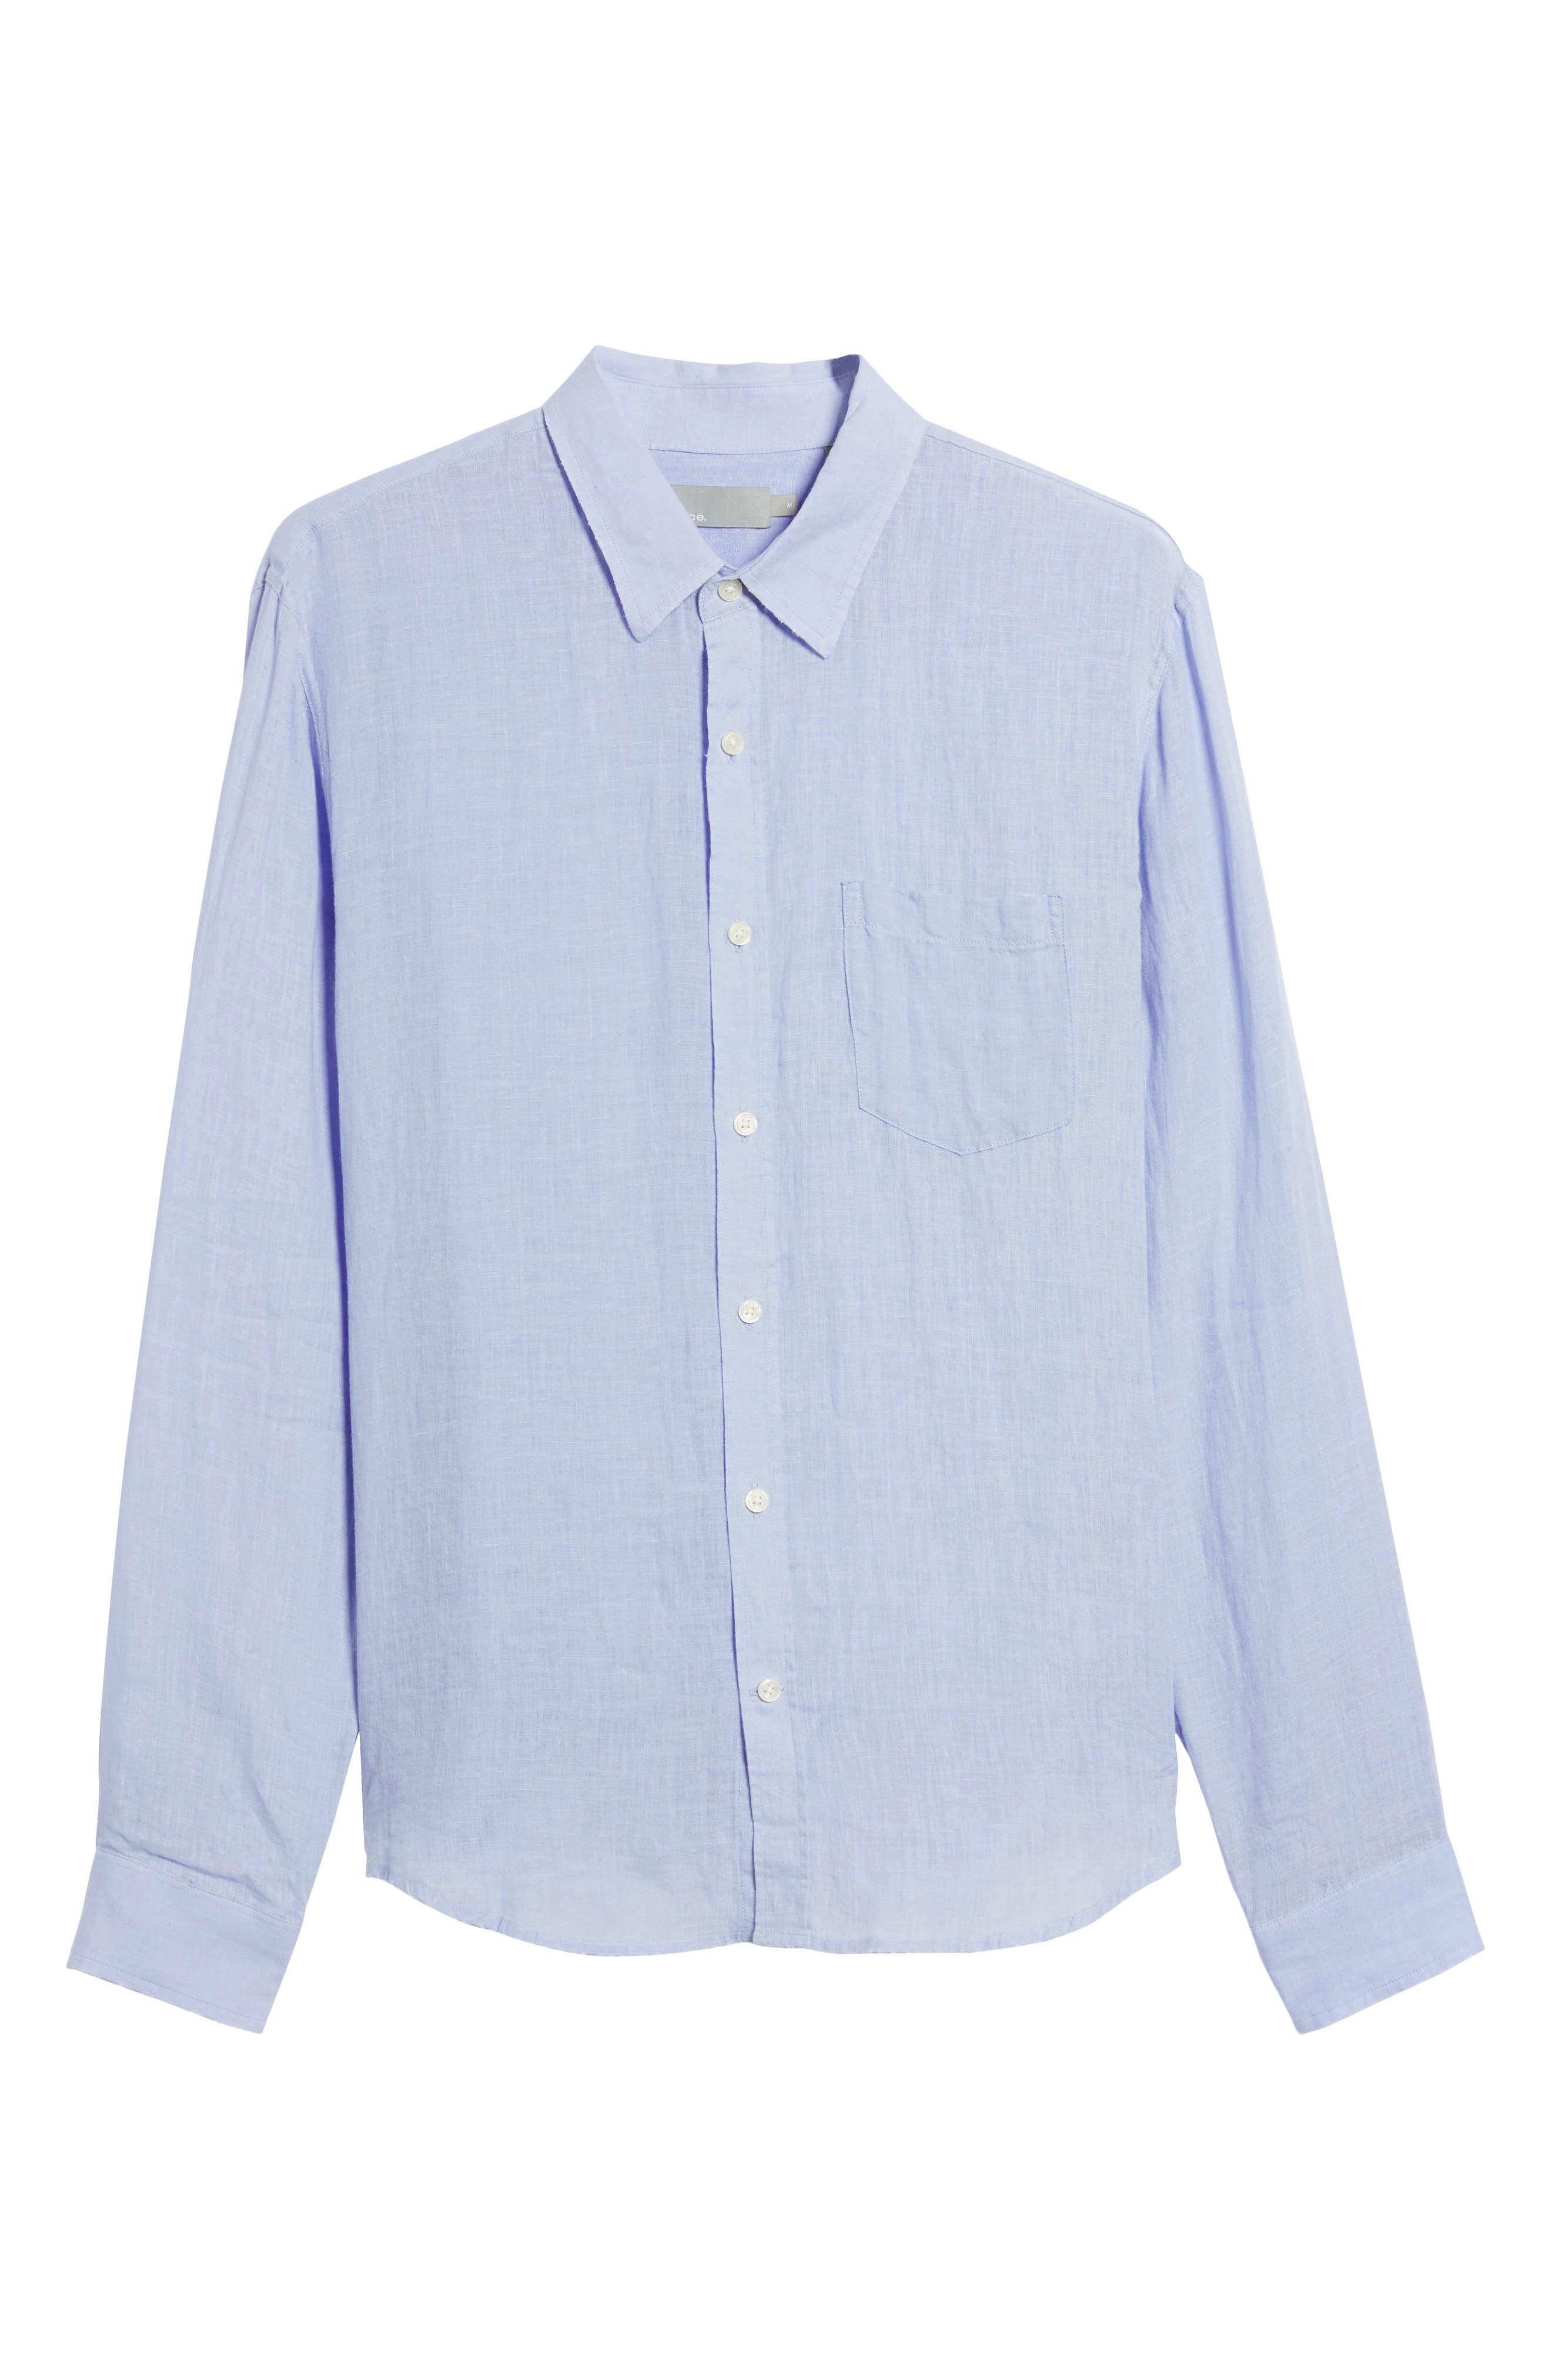 Washed Slim Fit Linen Sport Shirt,                             Alternate thumbnail 6, color,                             Feather